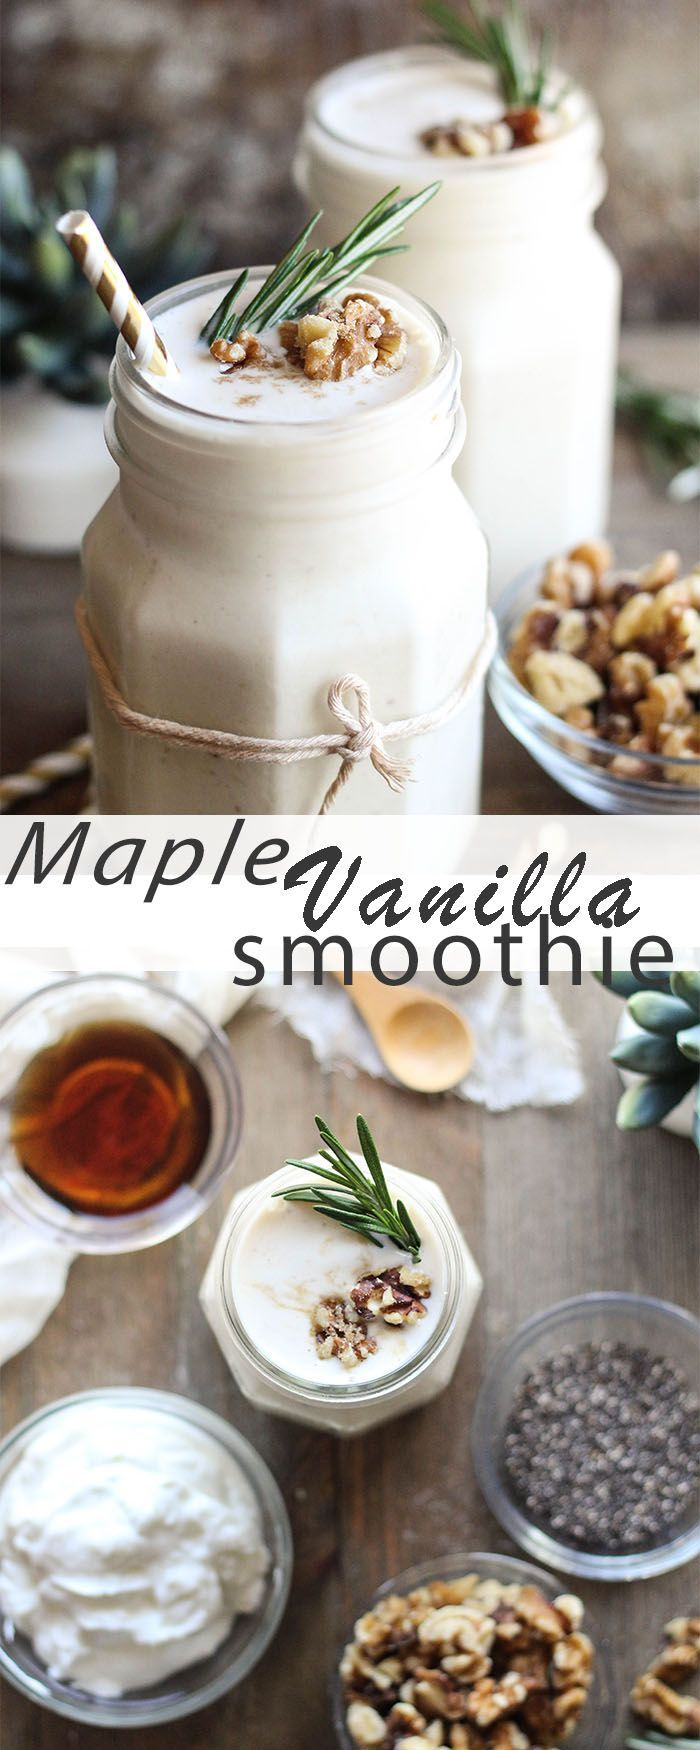 Start your day off right with a heart-healthy maple vanilla smoothie.